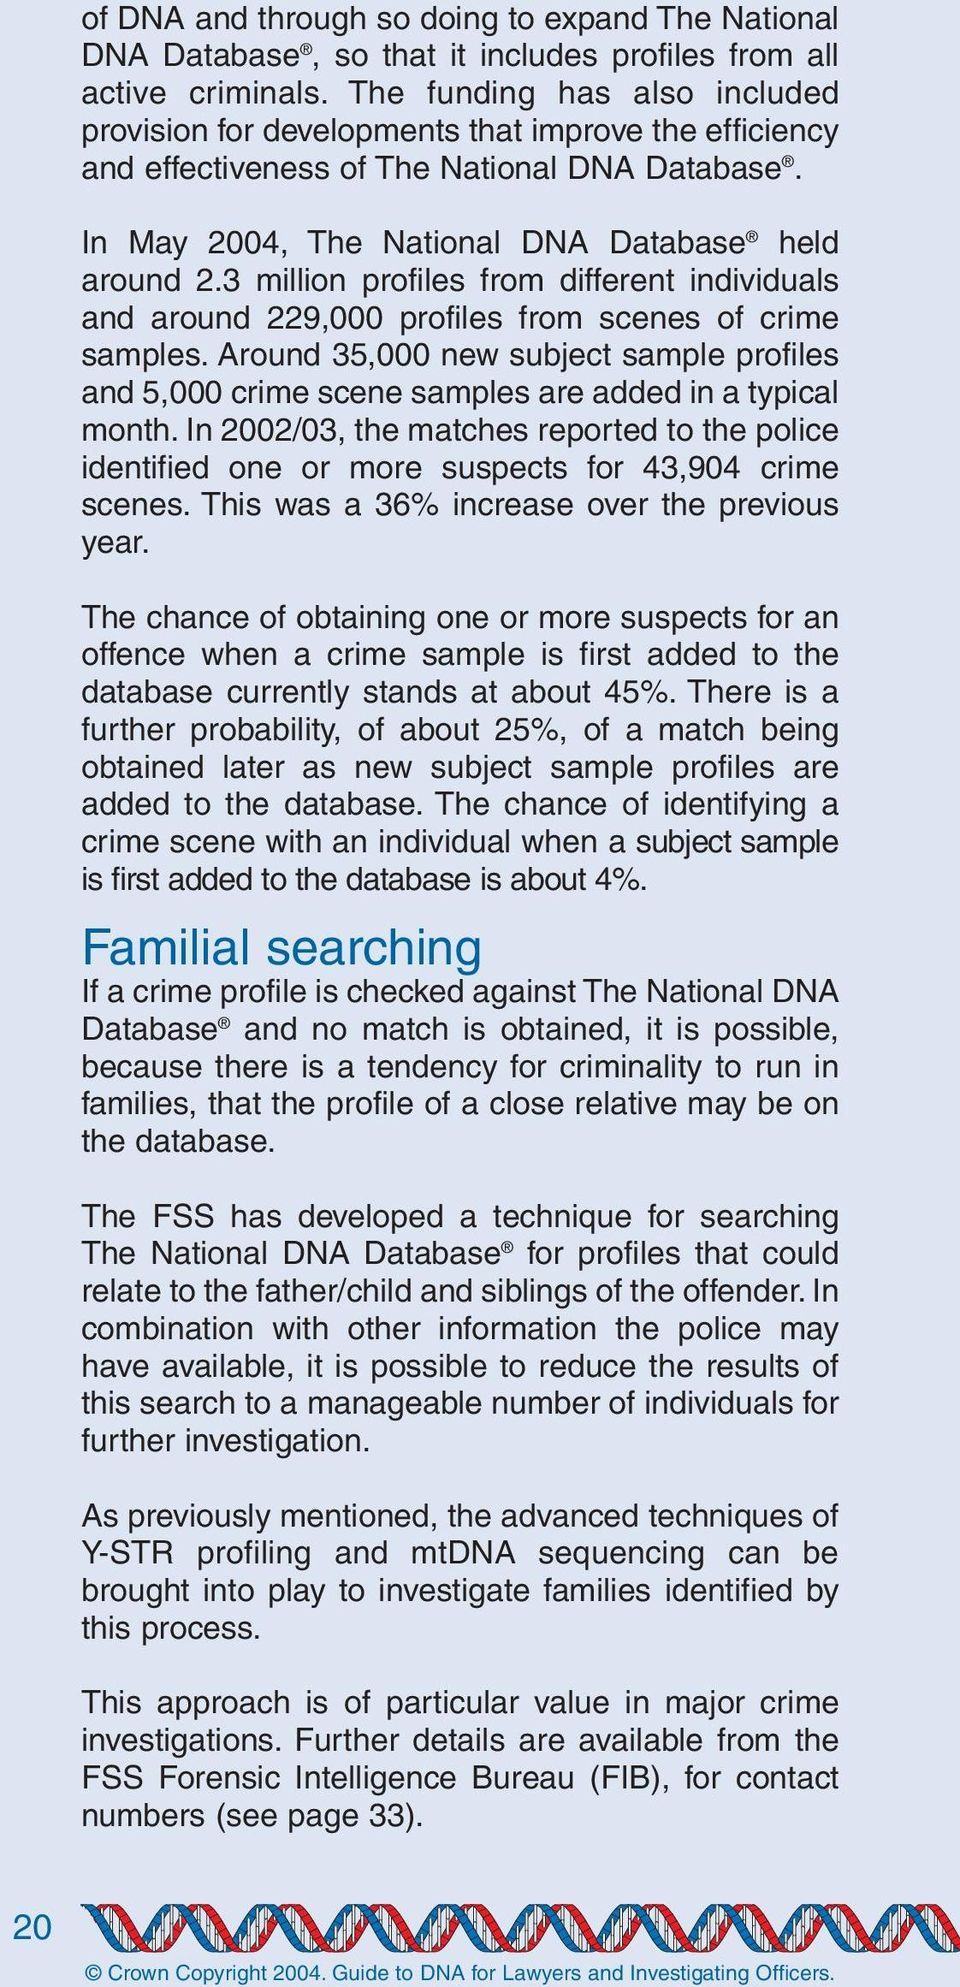 3 million profiles from different individuals and around 229,000 profiles from scenes of crime samples.